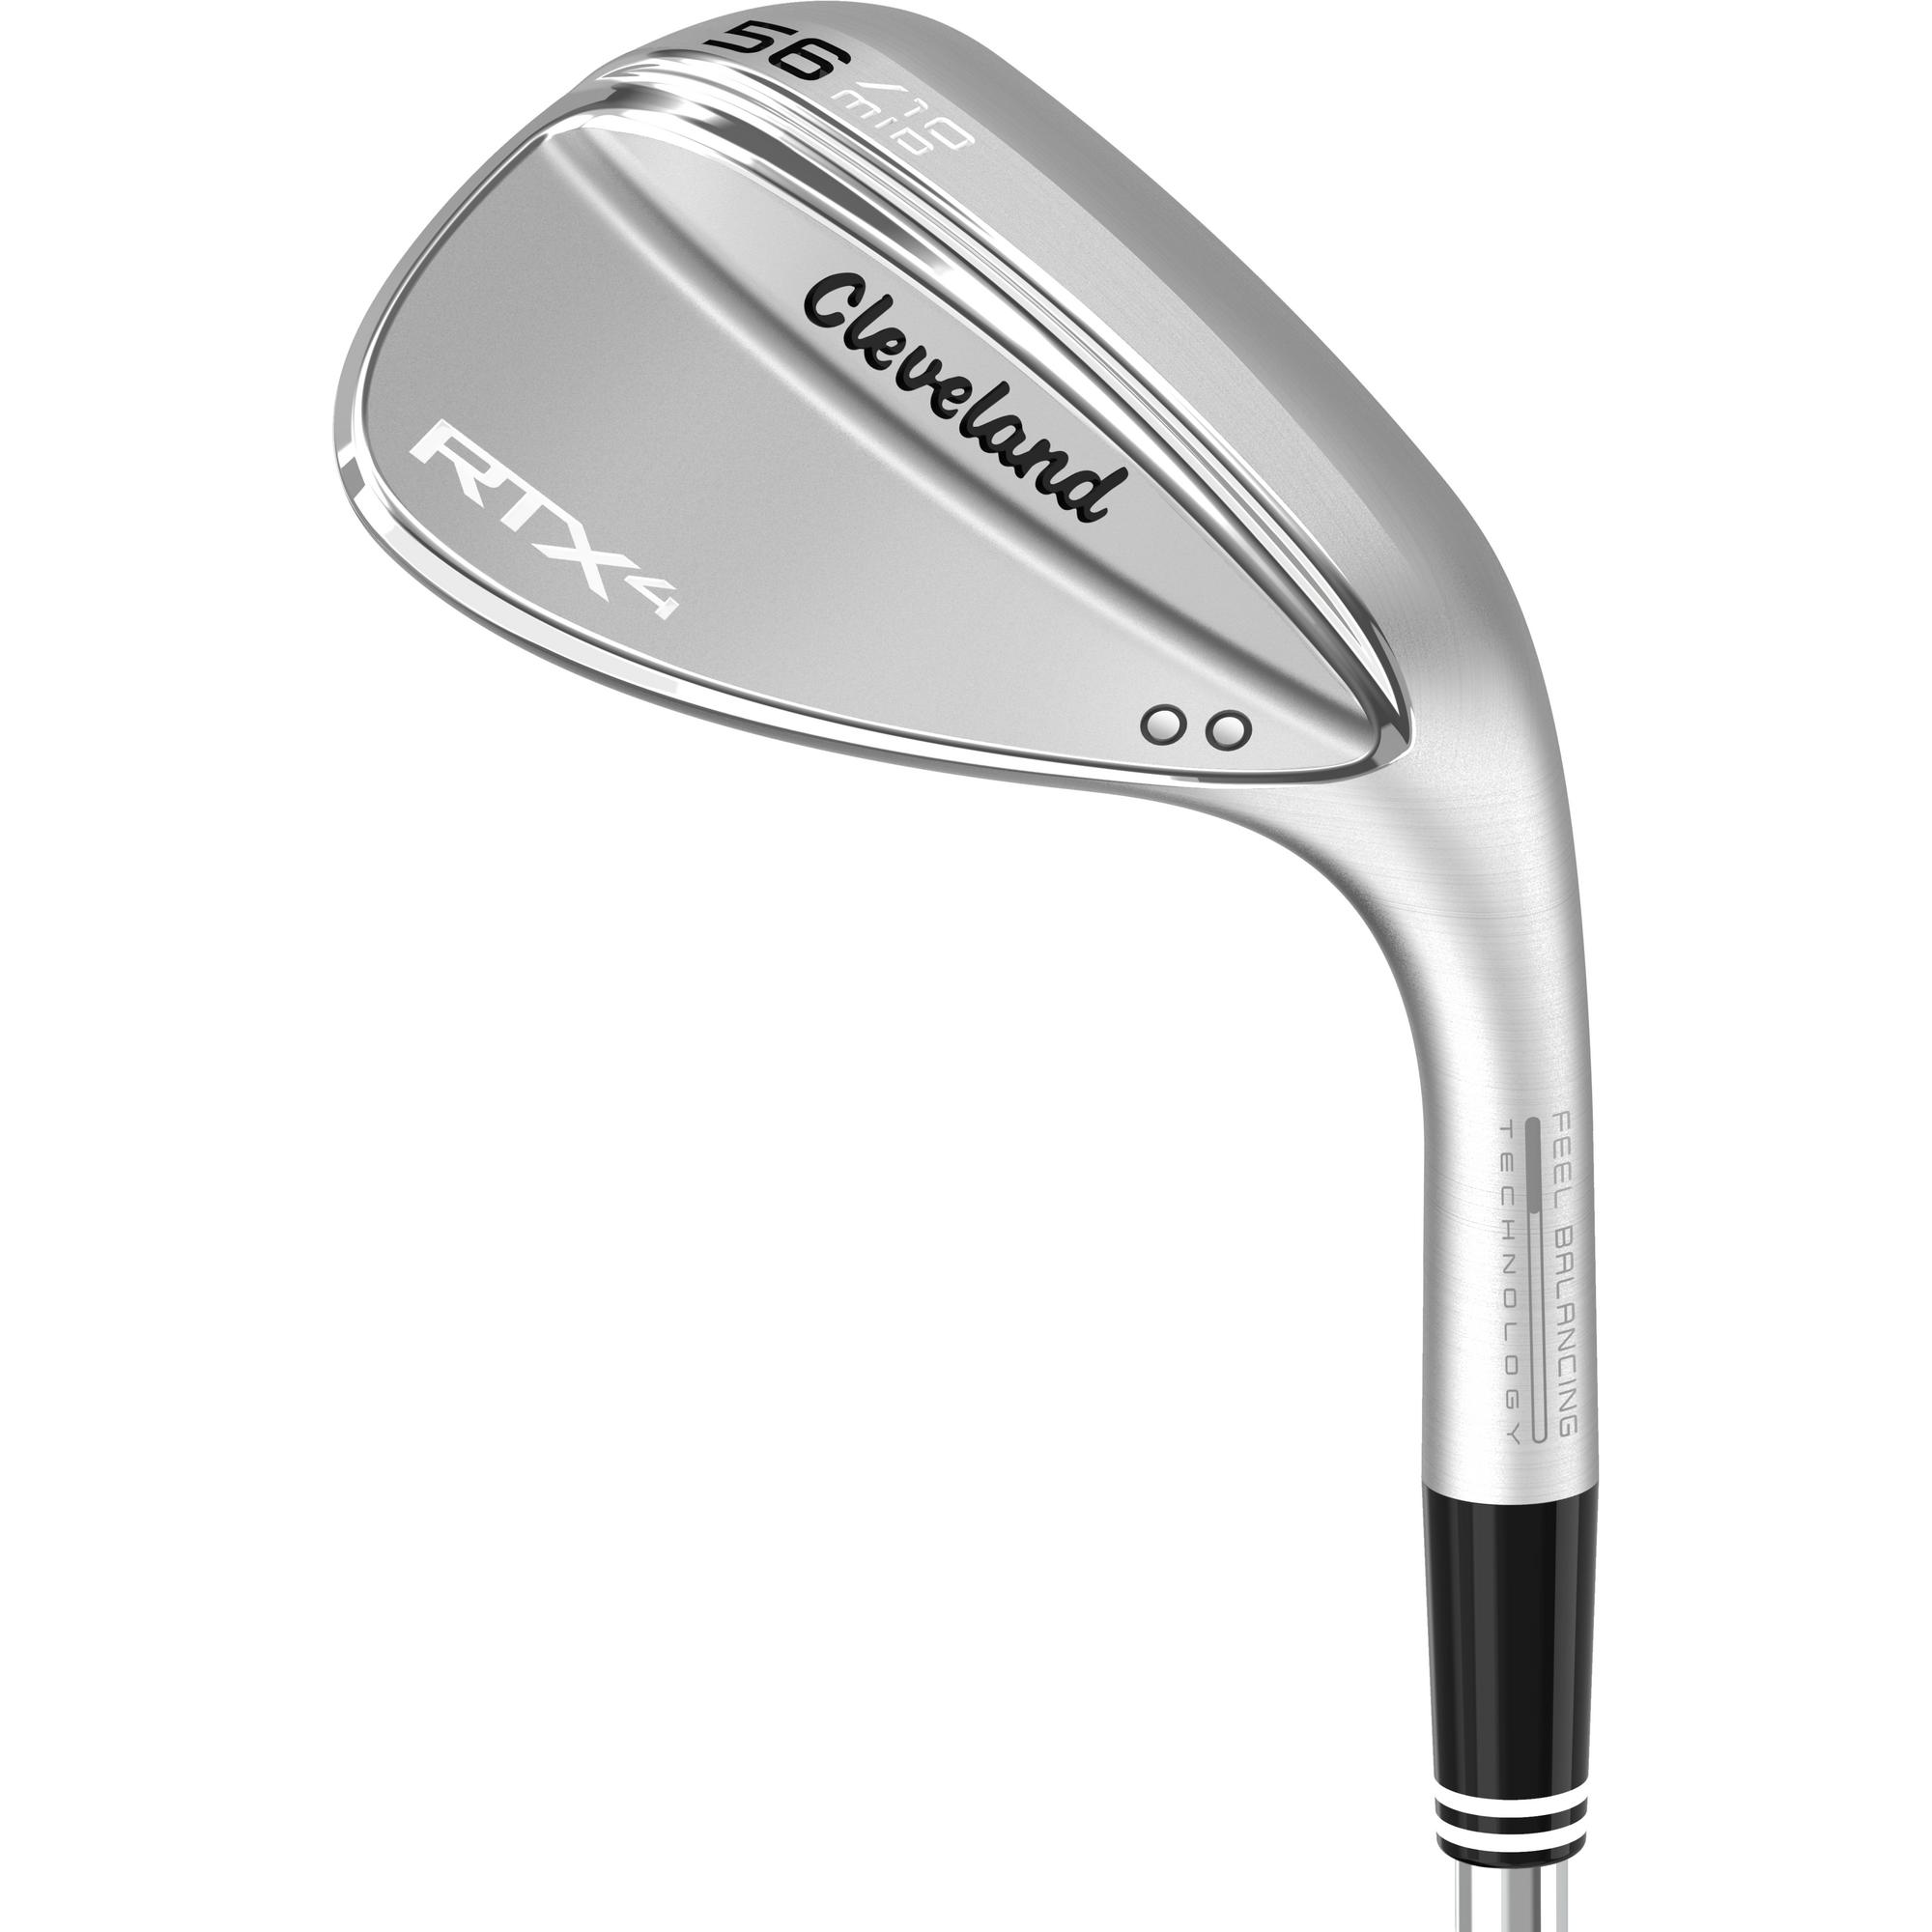 Cocheur RTX 4.0 Tour Satin